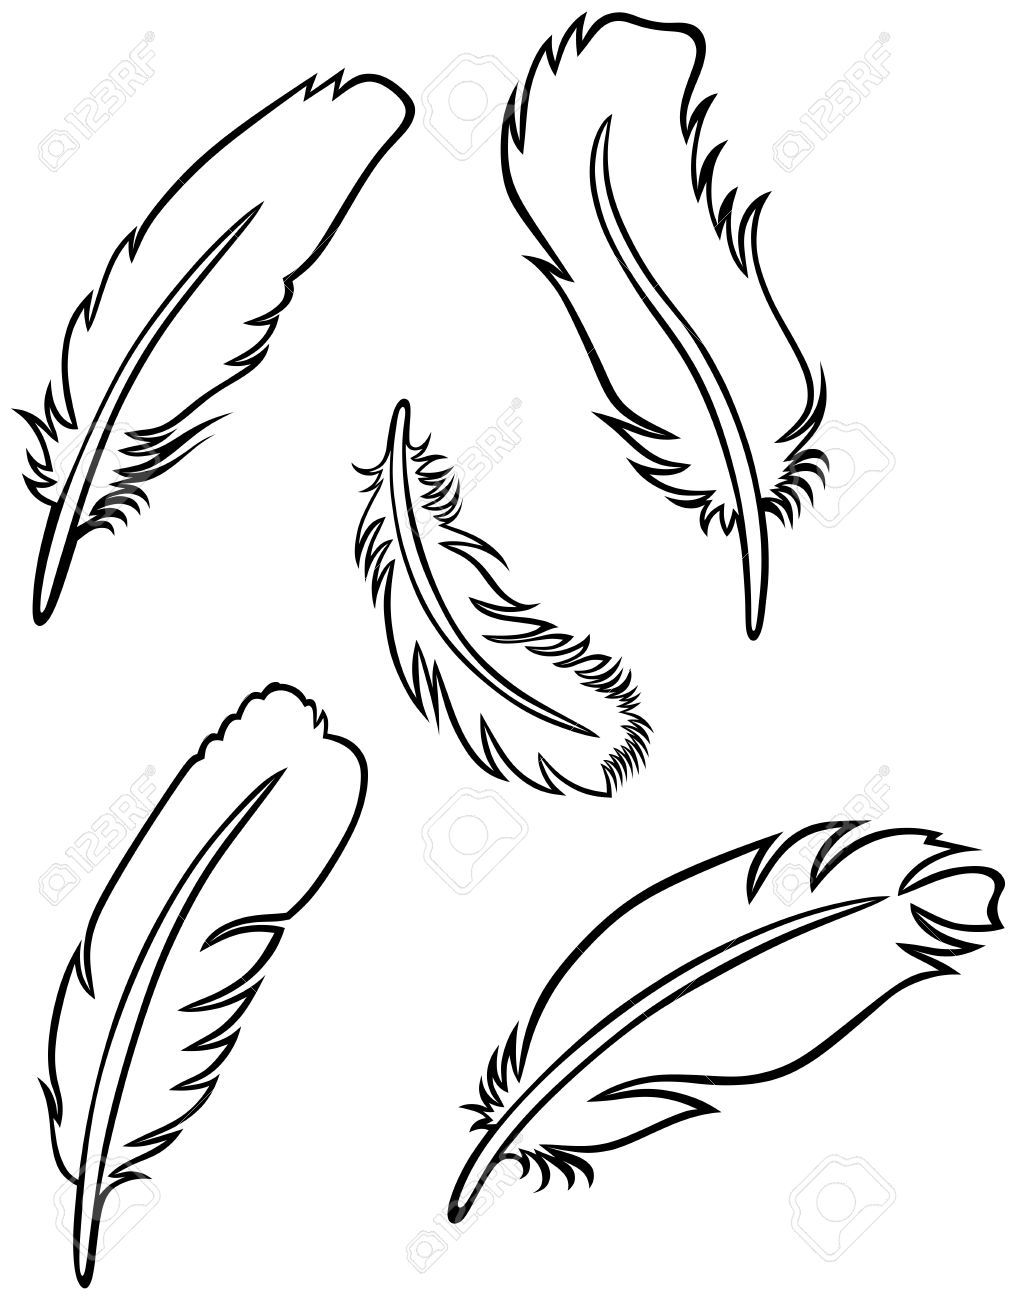 Drawings google search bike. Feather clipart easy